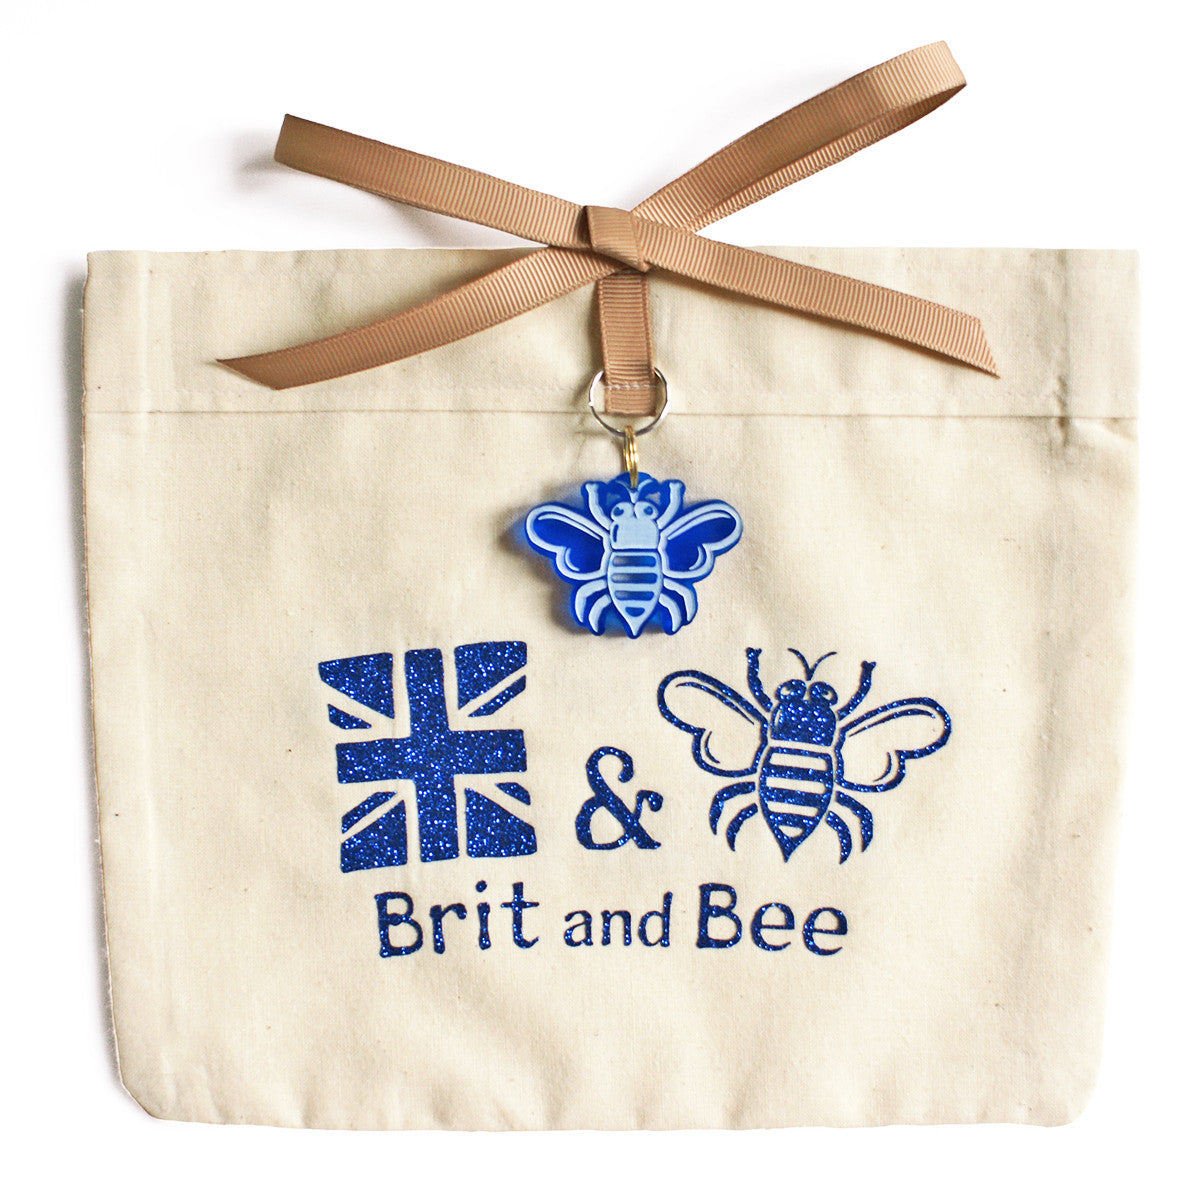 Brit and Bee Sorority Chapter Decal - Sigma Delta Tau